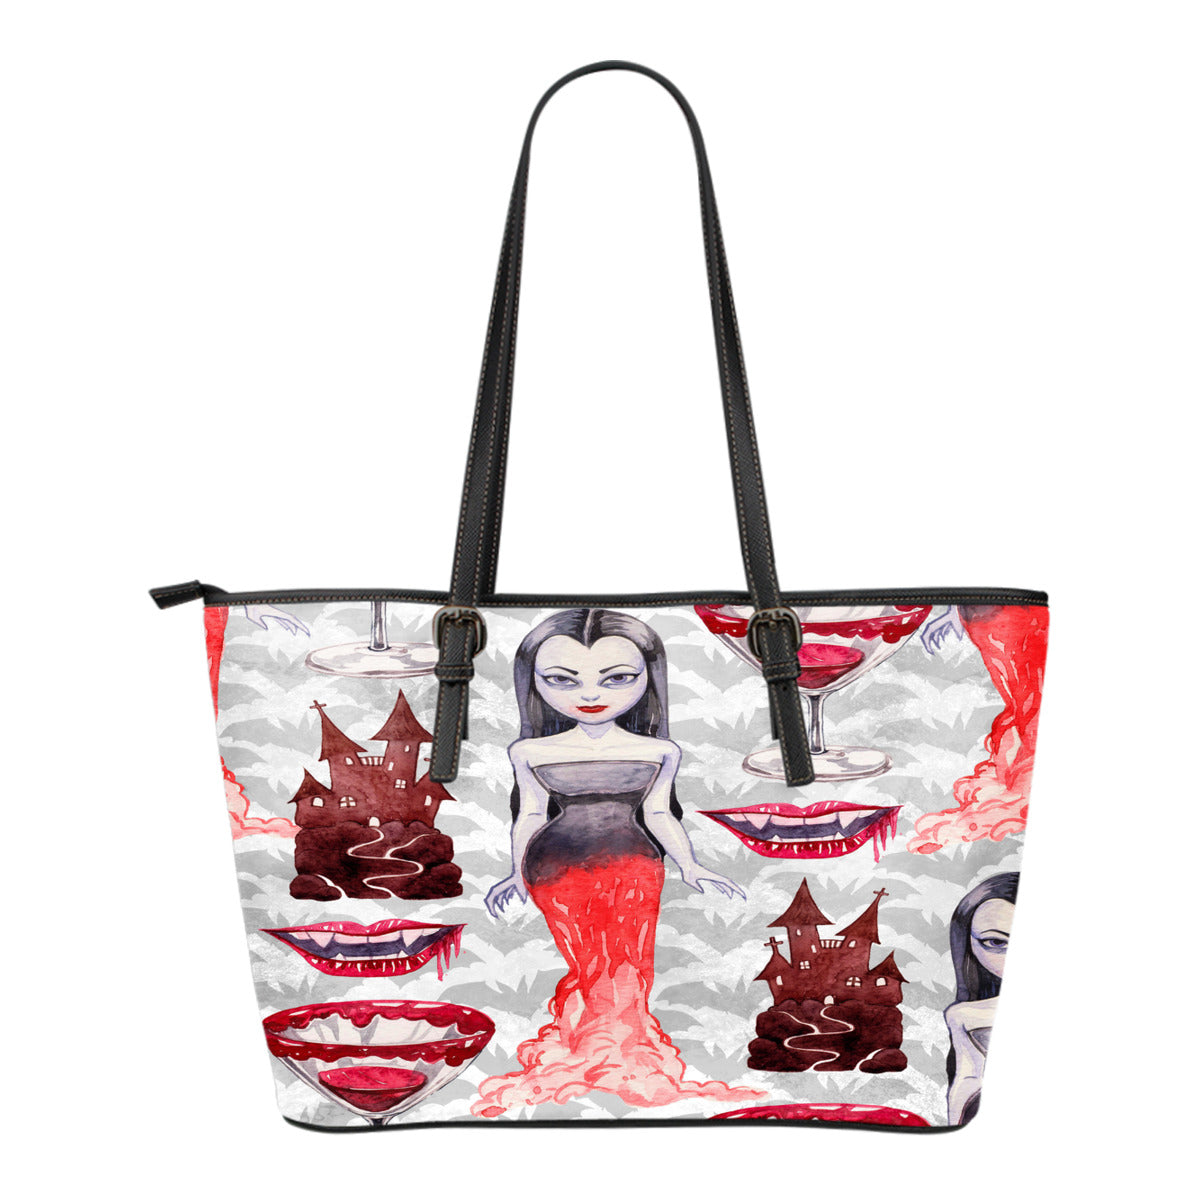 Vampire Themed Design C3 Women Small Leather Tote Bag